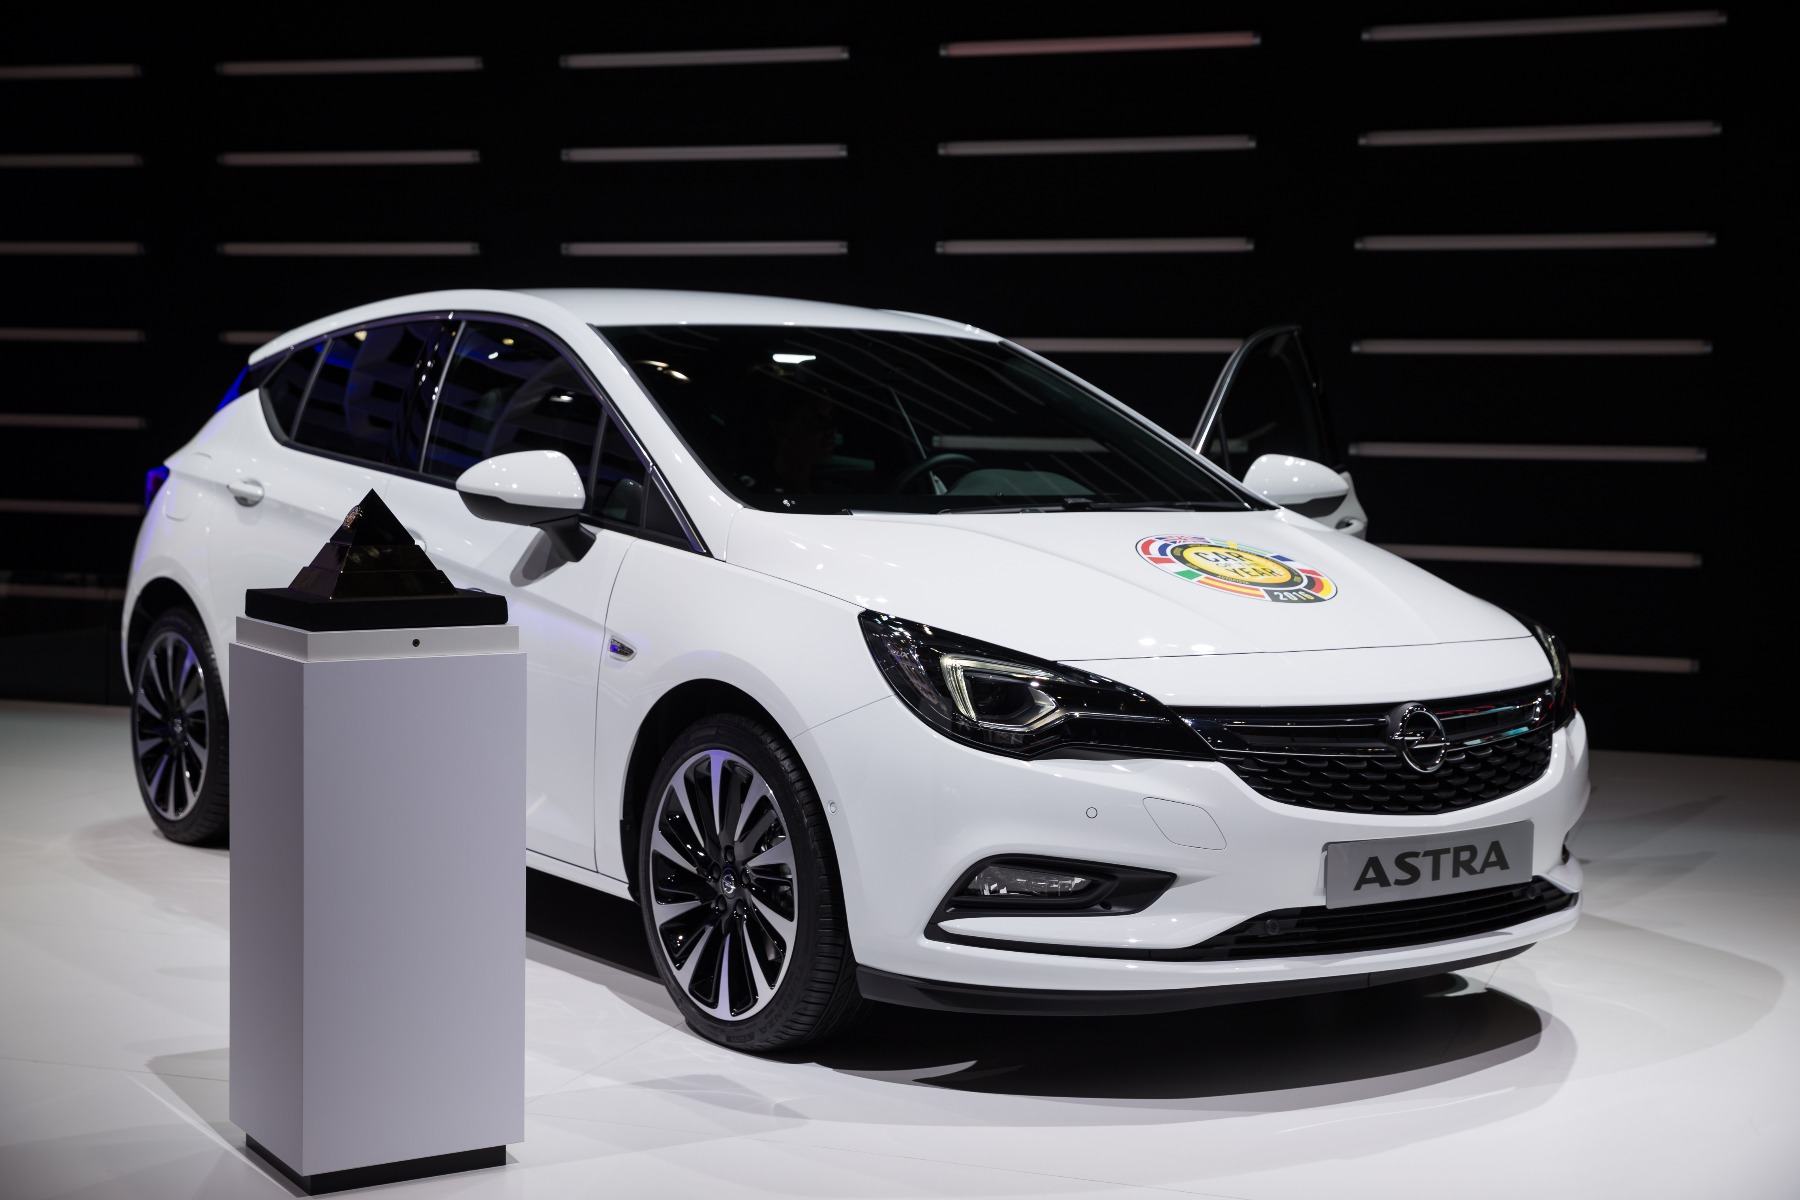 where to buy a vauxhall astra car battery